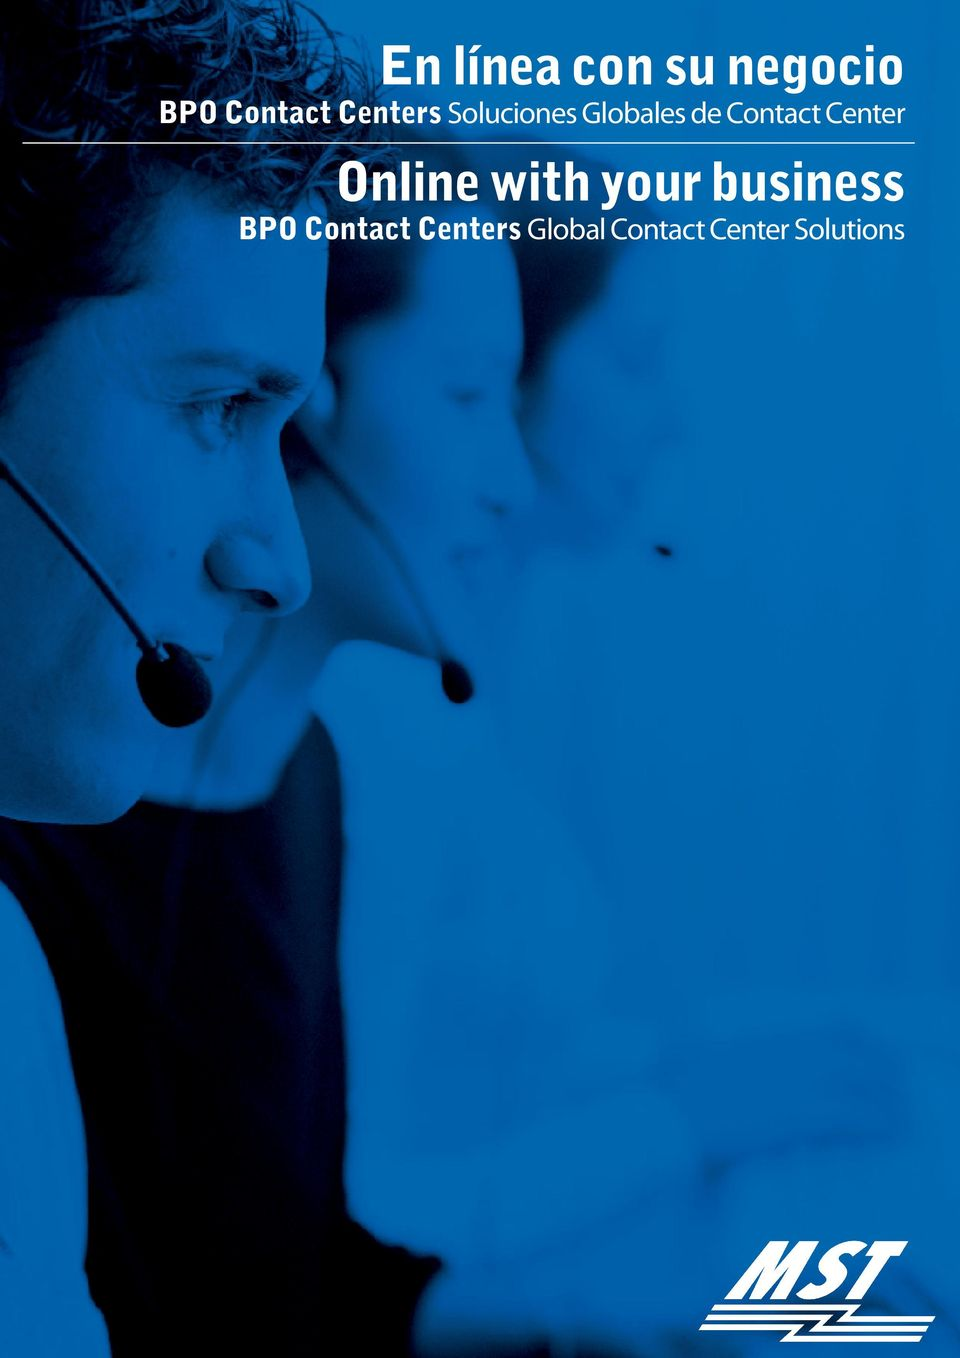 Center Online with your business BPO